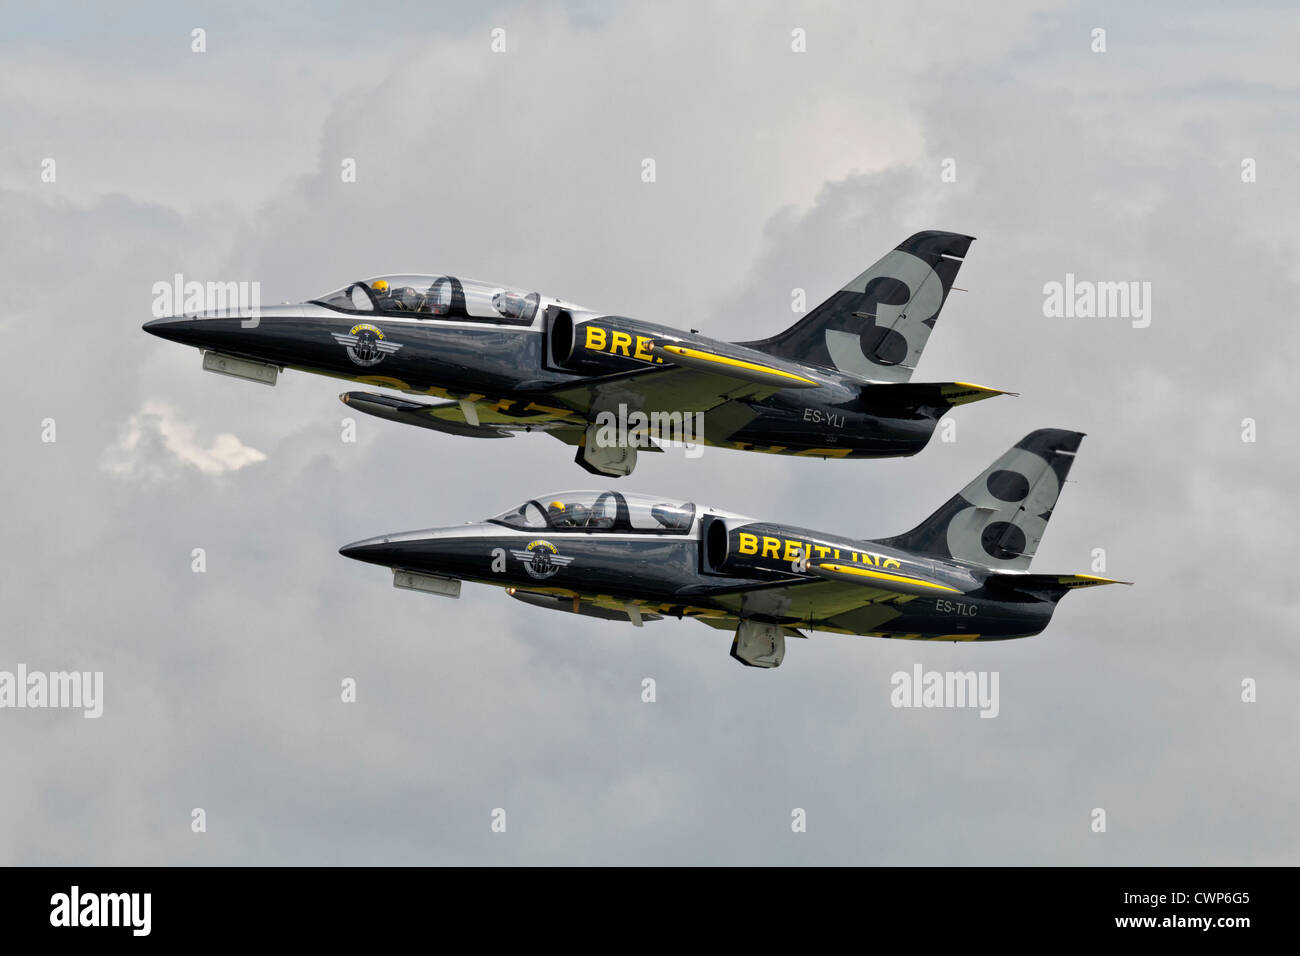 A pairs take off from 2x Aero L39 Albatross aircraft of the Breitling jet team - Stock Image